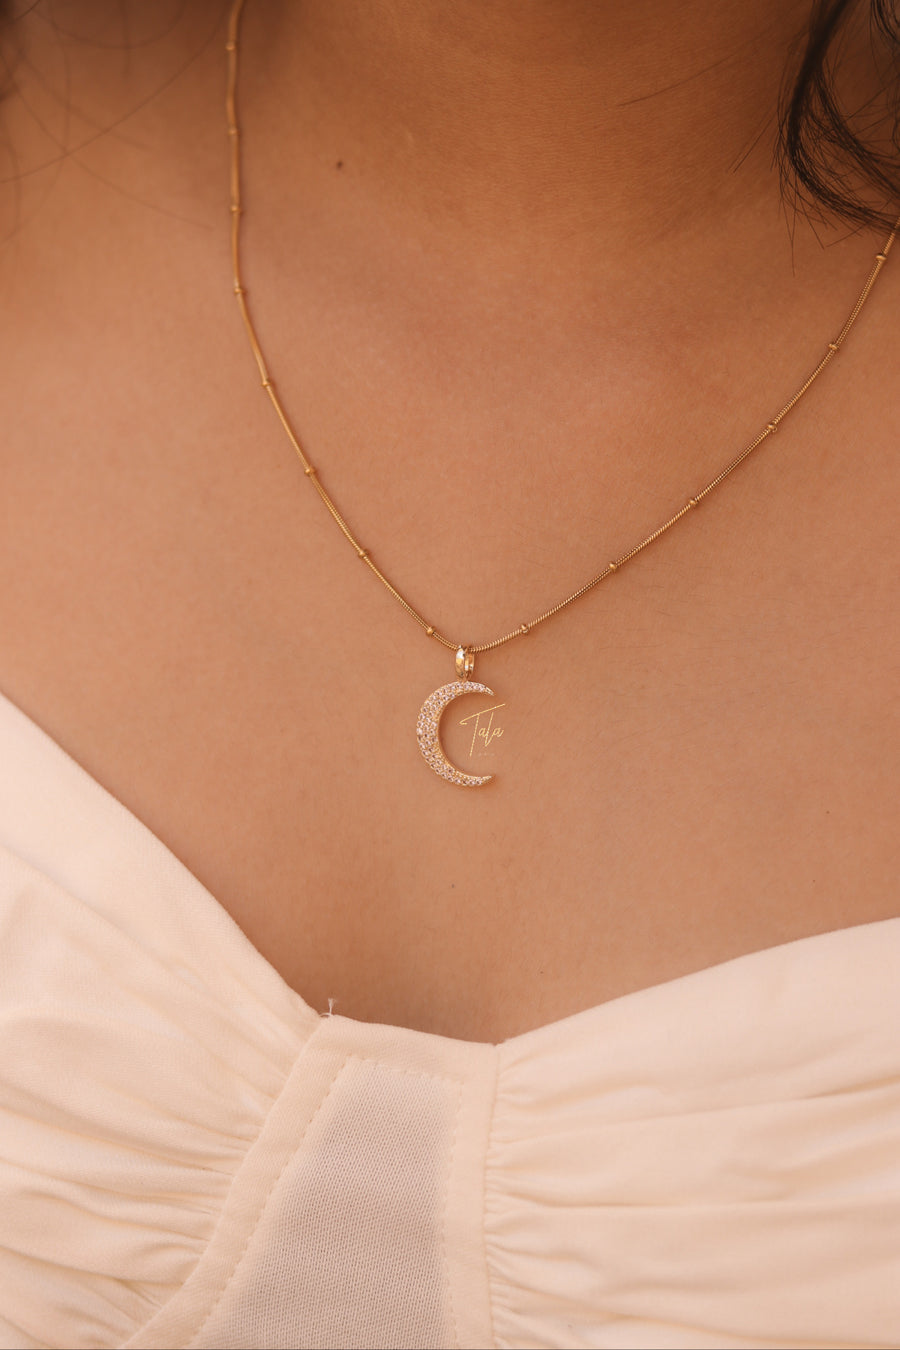 Demi Choker, Lilac Moon Necklace